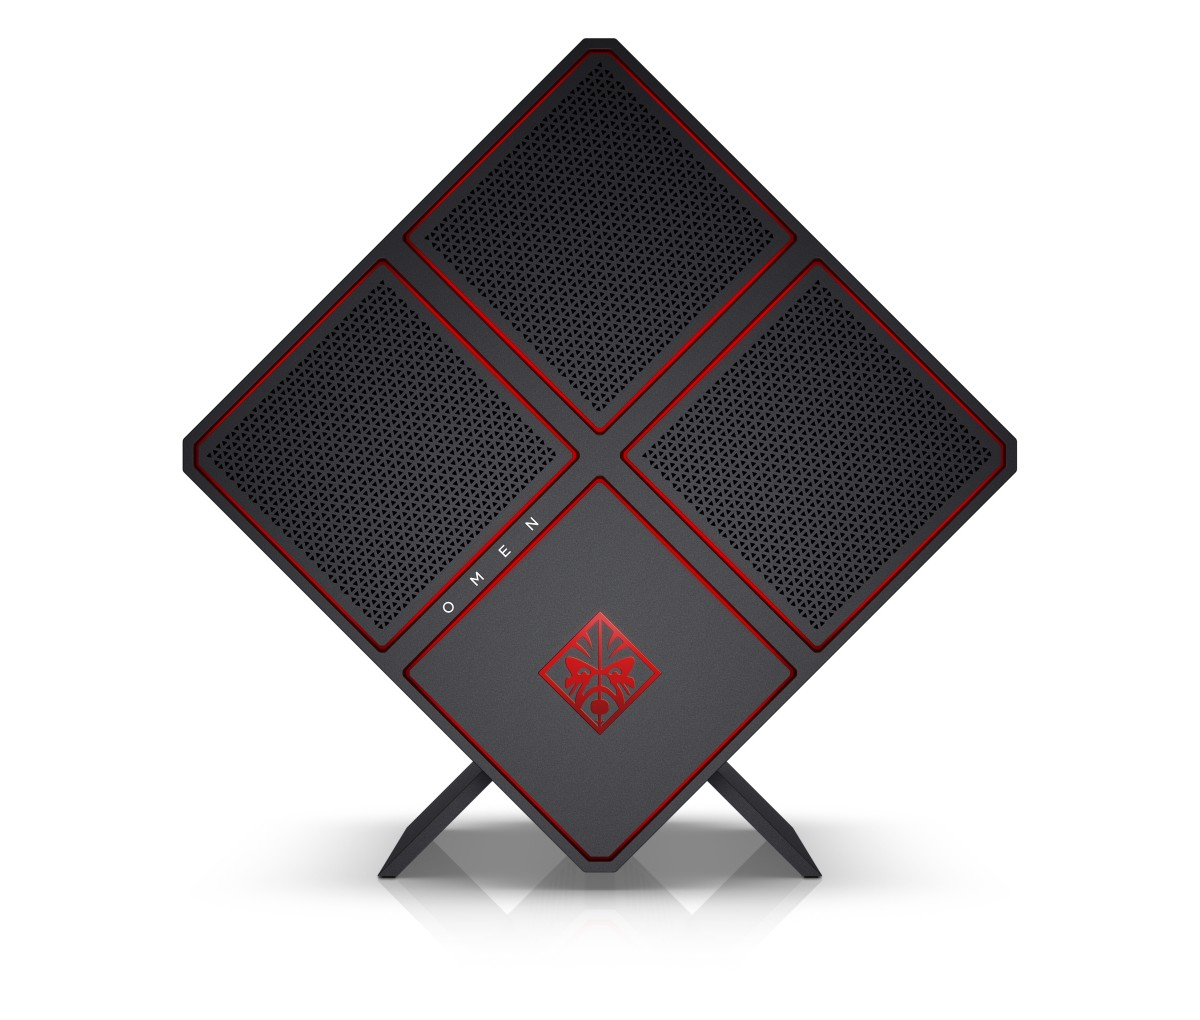 HP PC OMEN X Desktop 900-070nc Core i7-6700K,32GB,2TB/7200+SSD 256GB,DVD R/W,WiFi,GeF GTX1080/8GB,USB 3.0,Win10